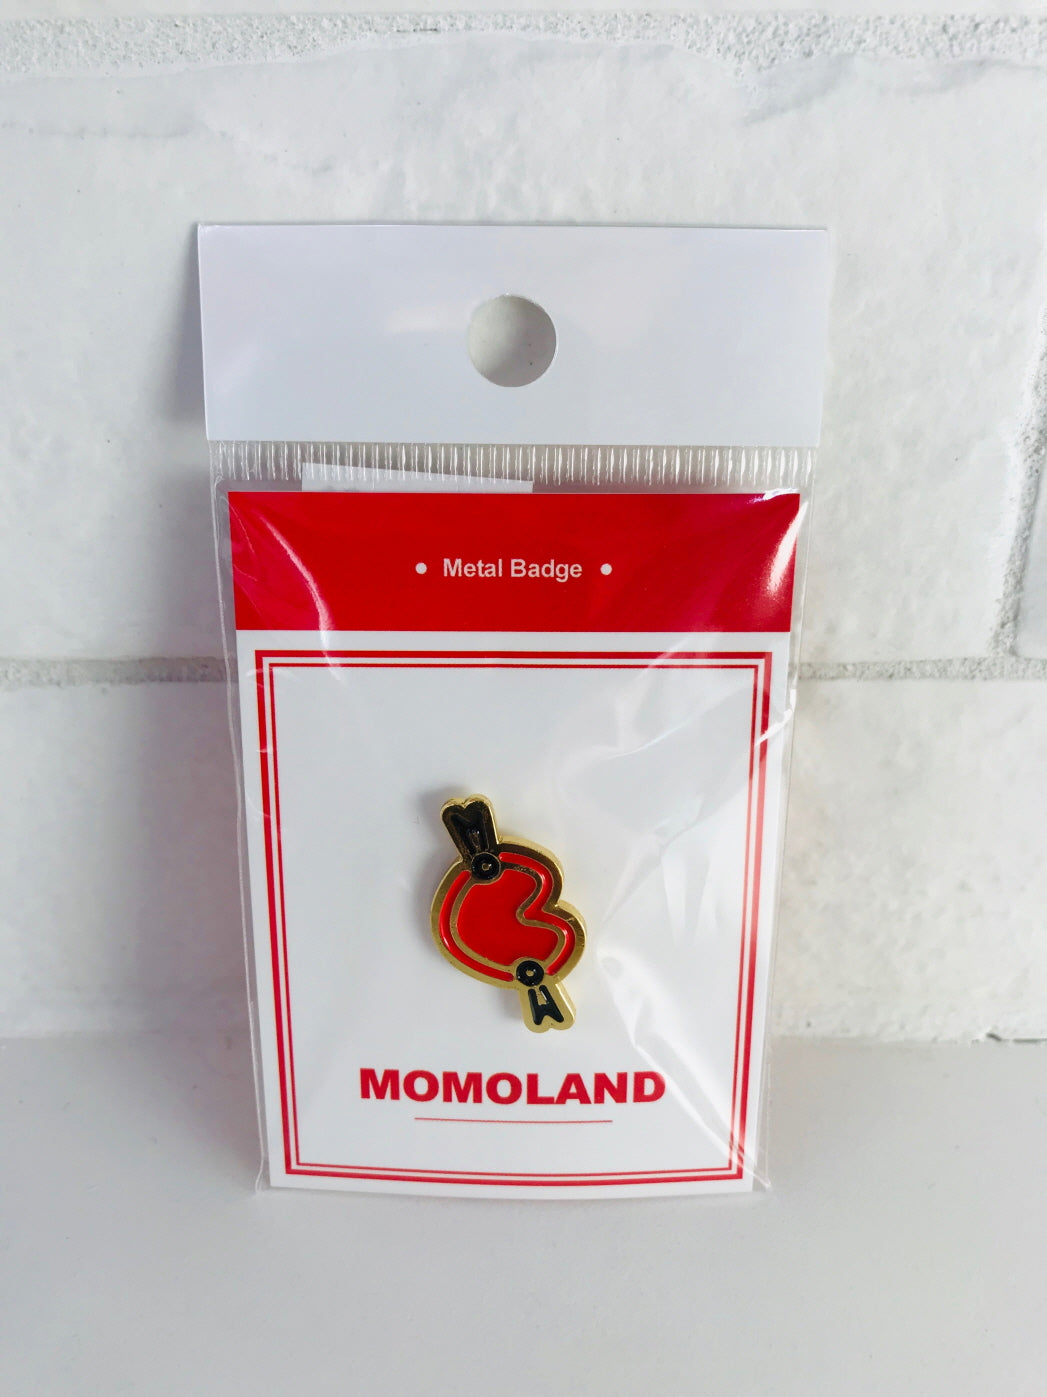 MOMOLAND METAL BADGE